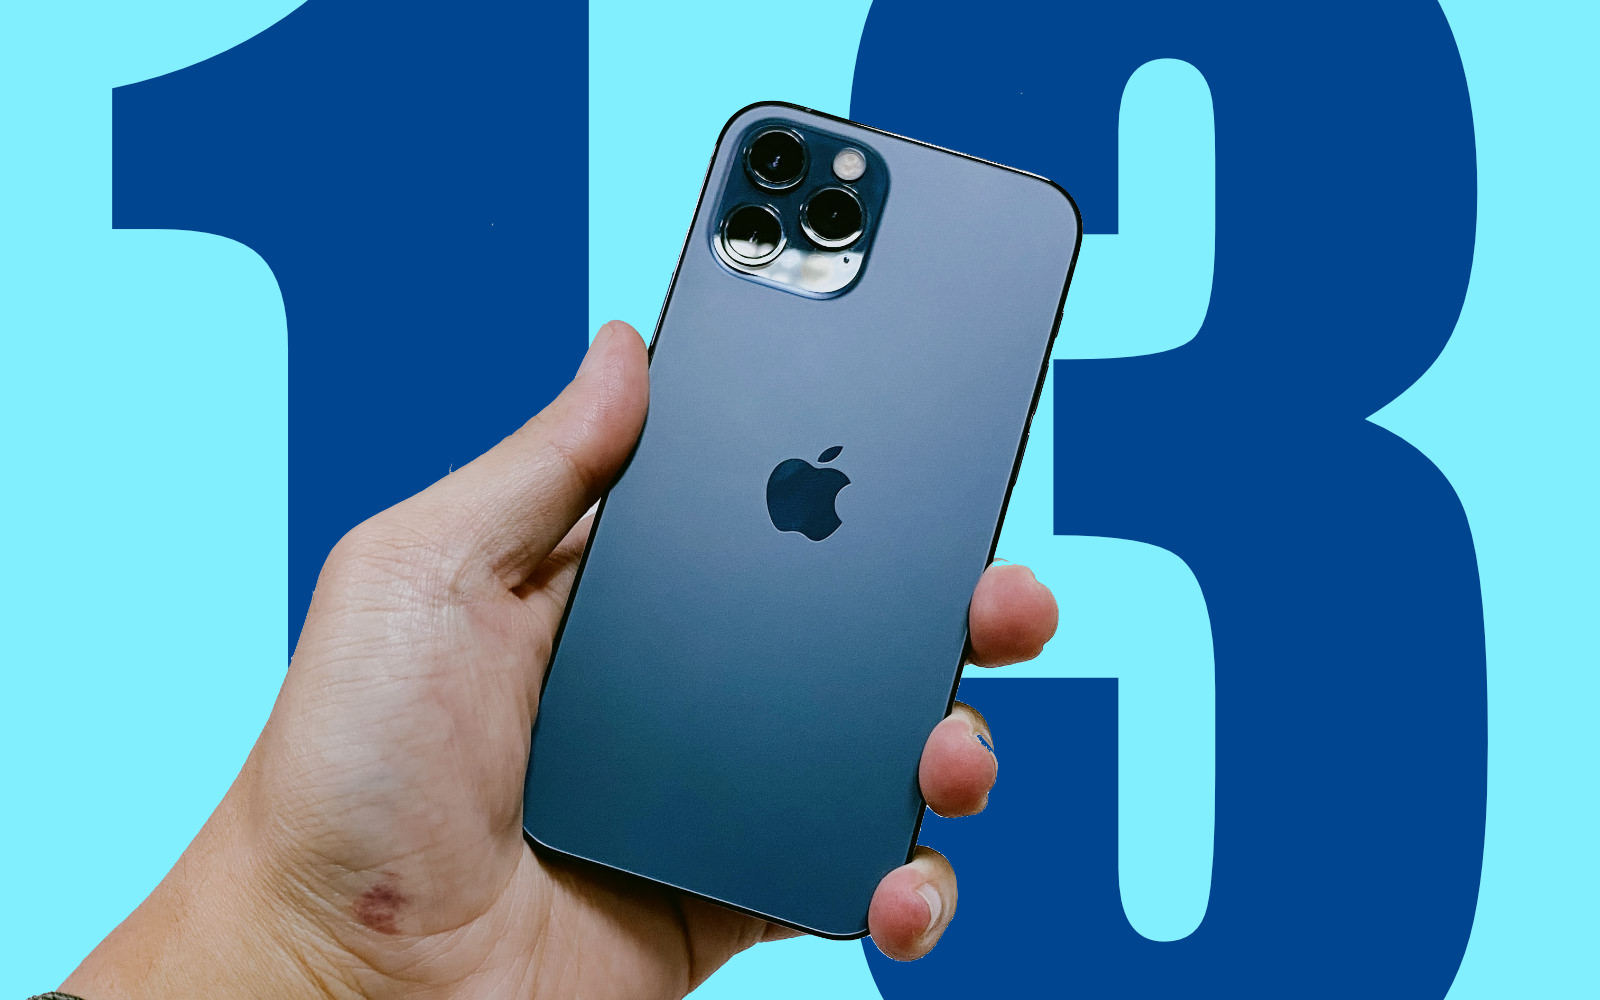 Iphone13 rumors not likely happening